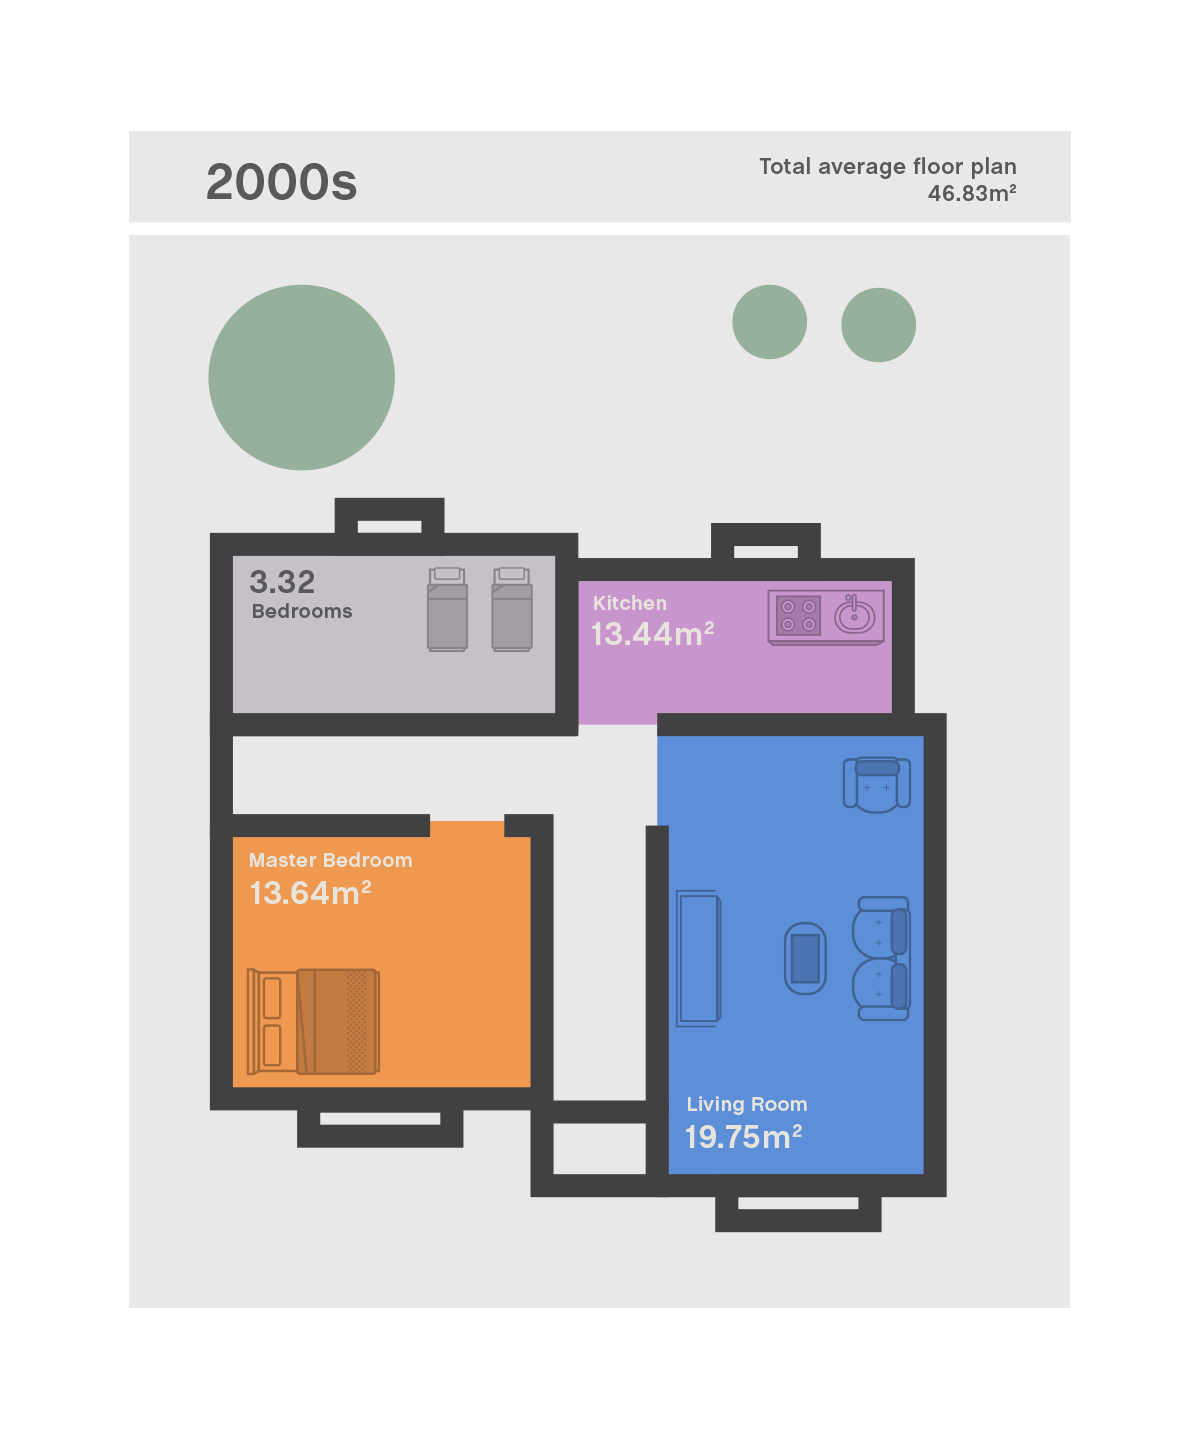 Housing infographic design